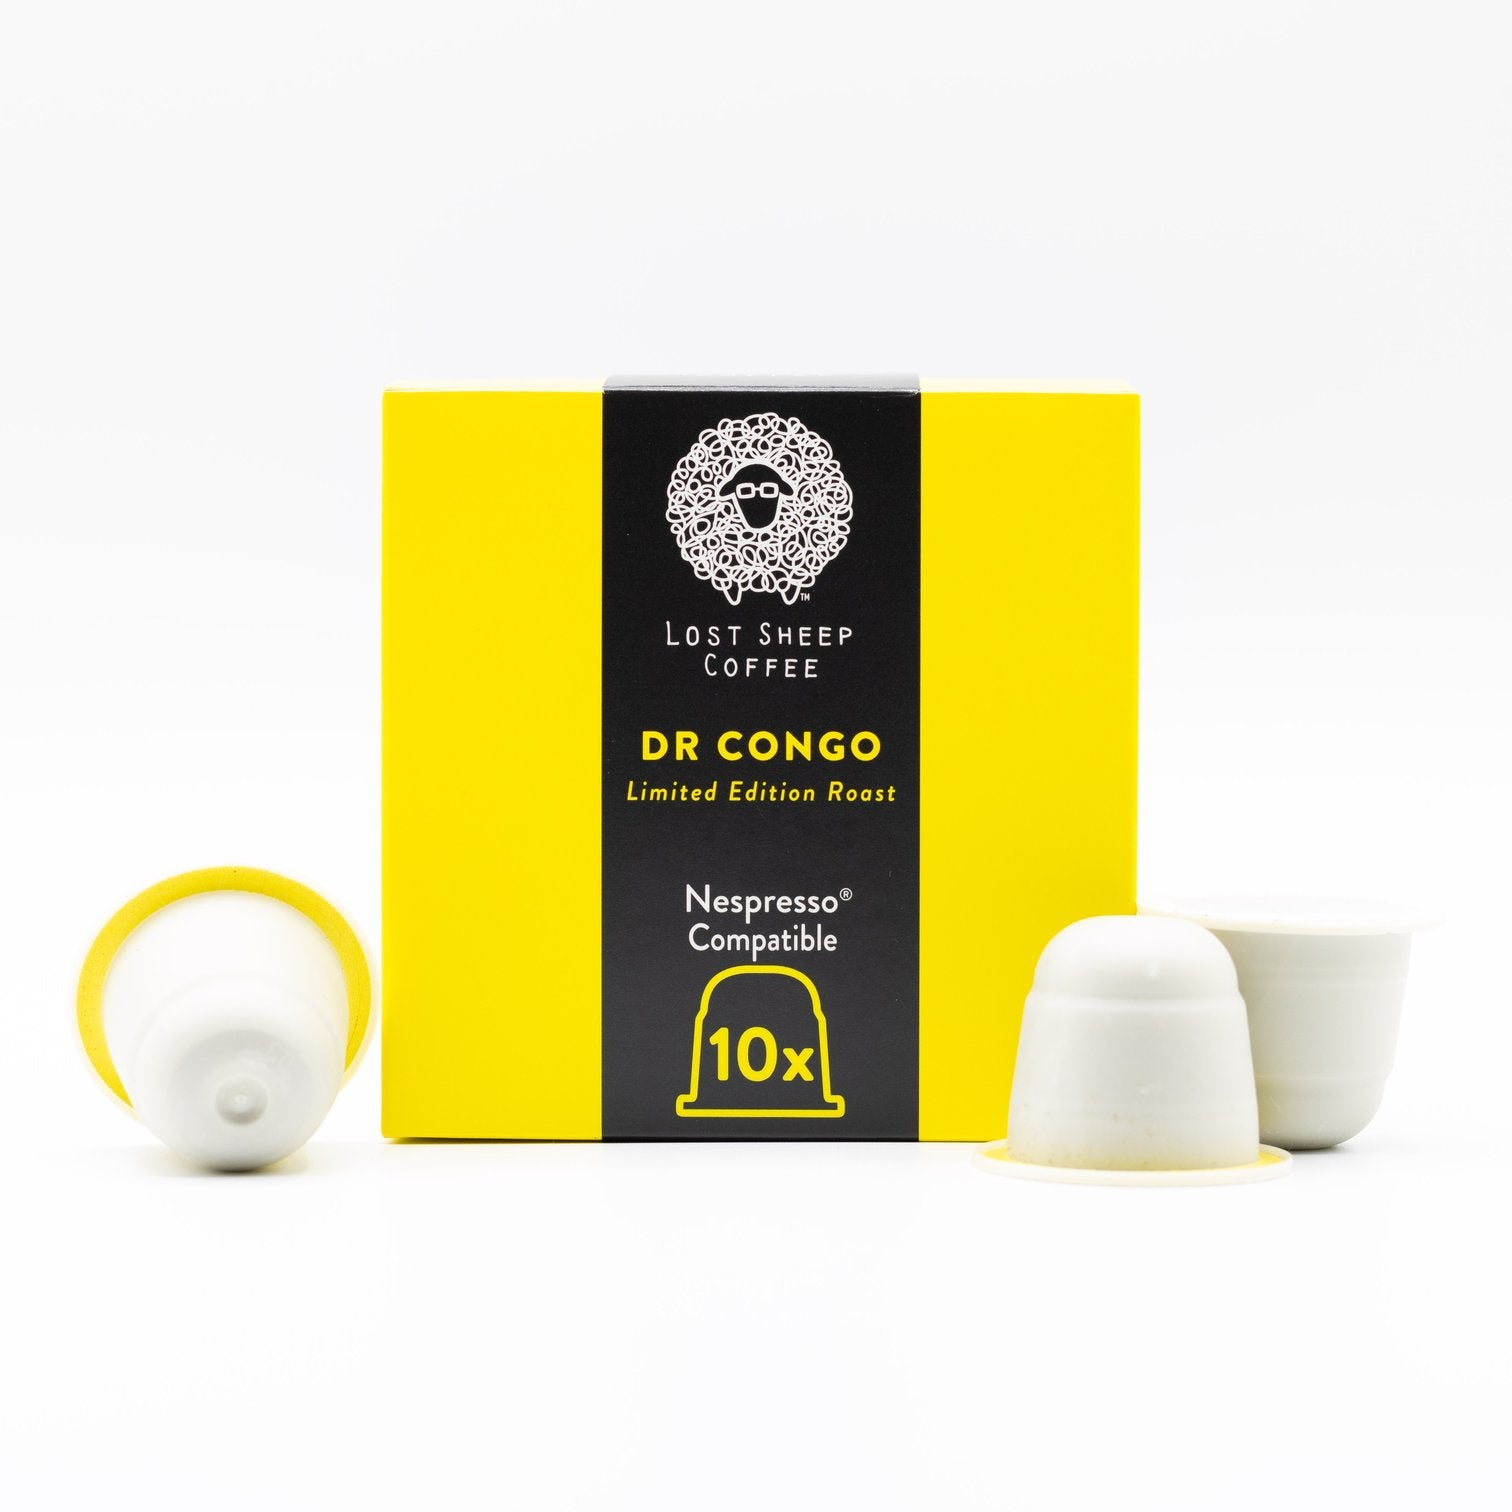 DR Congo - certified Organic | LIMITED EDITION | Compostable | Nespresso© Capsules, Floral Black Tea, pineapple acidity with a big plum jam sweetness! Available to pre-order, delivery middle of November - natoorio